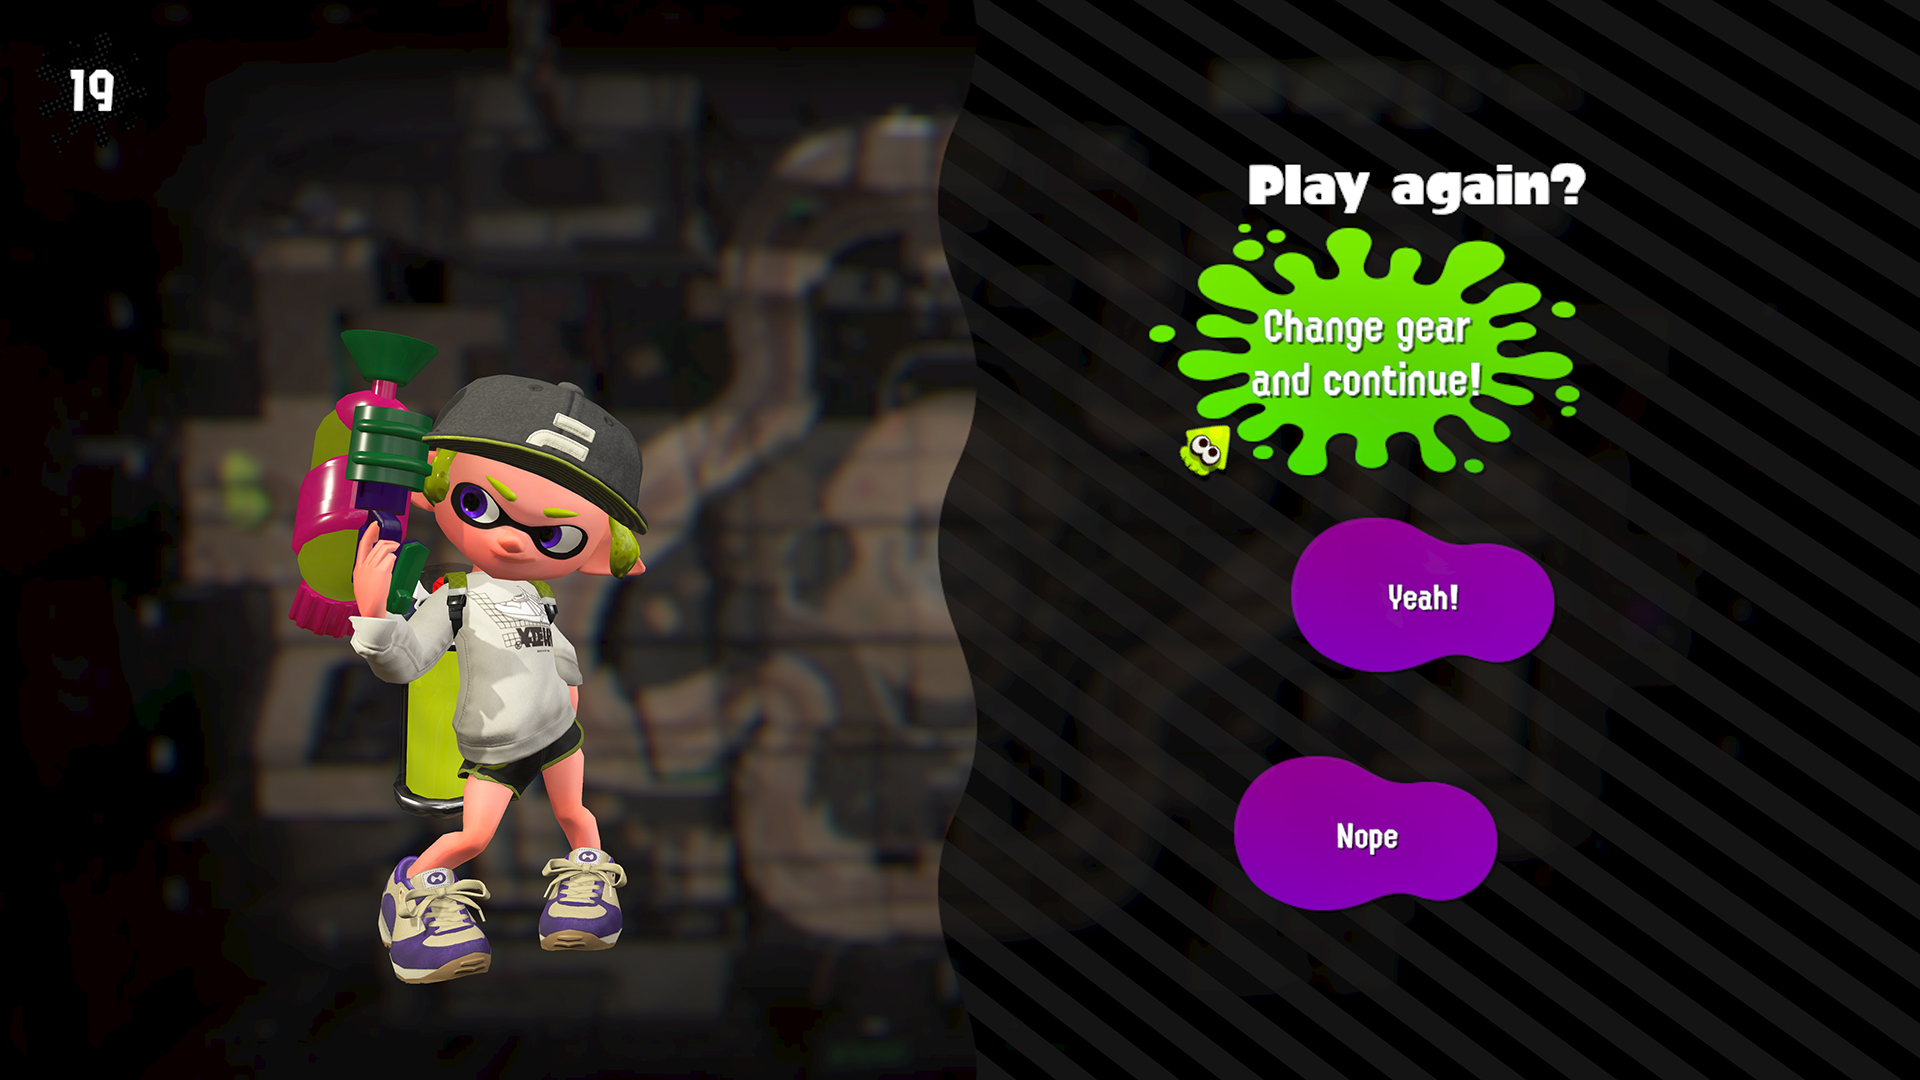 Switch_Splatoon2_screen_ChangeGear